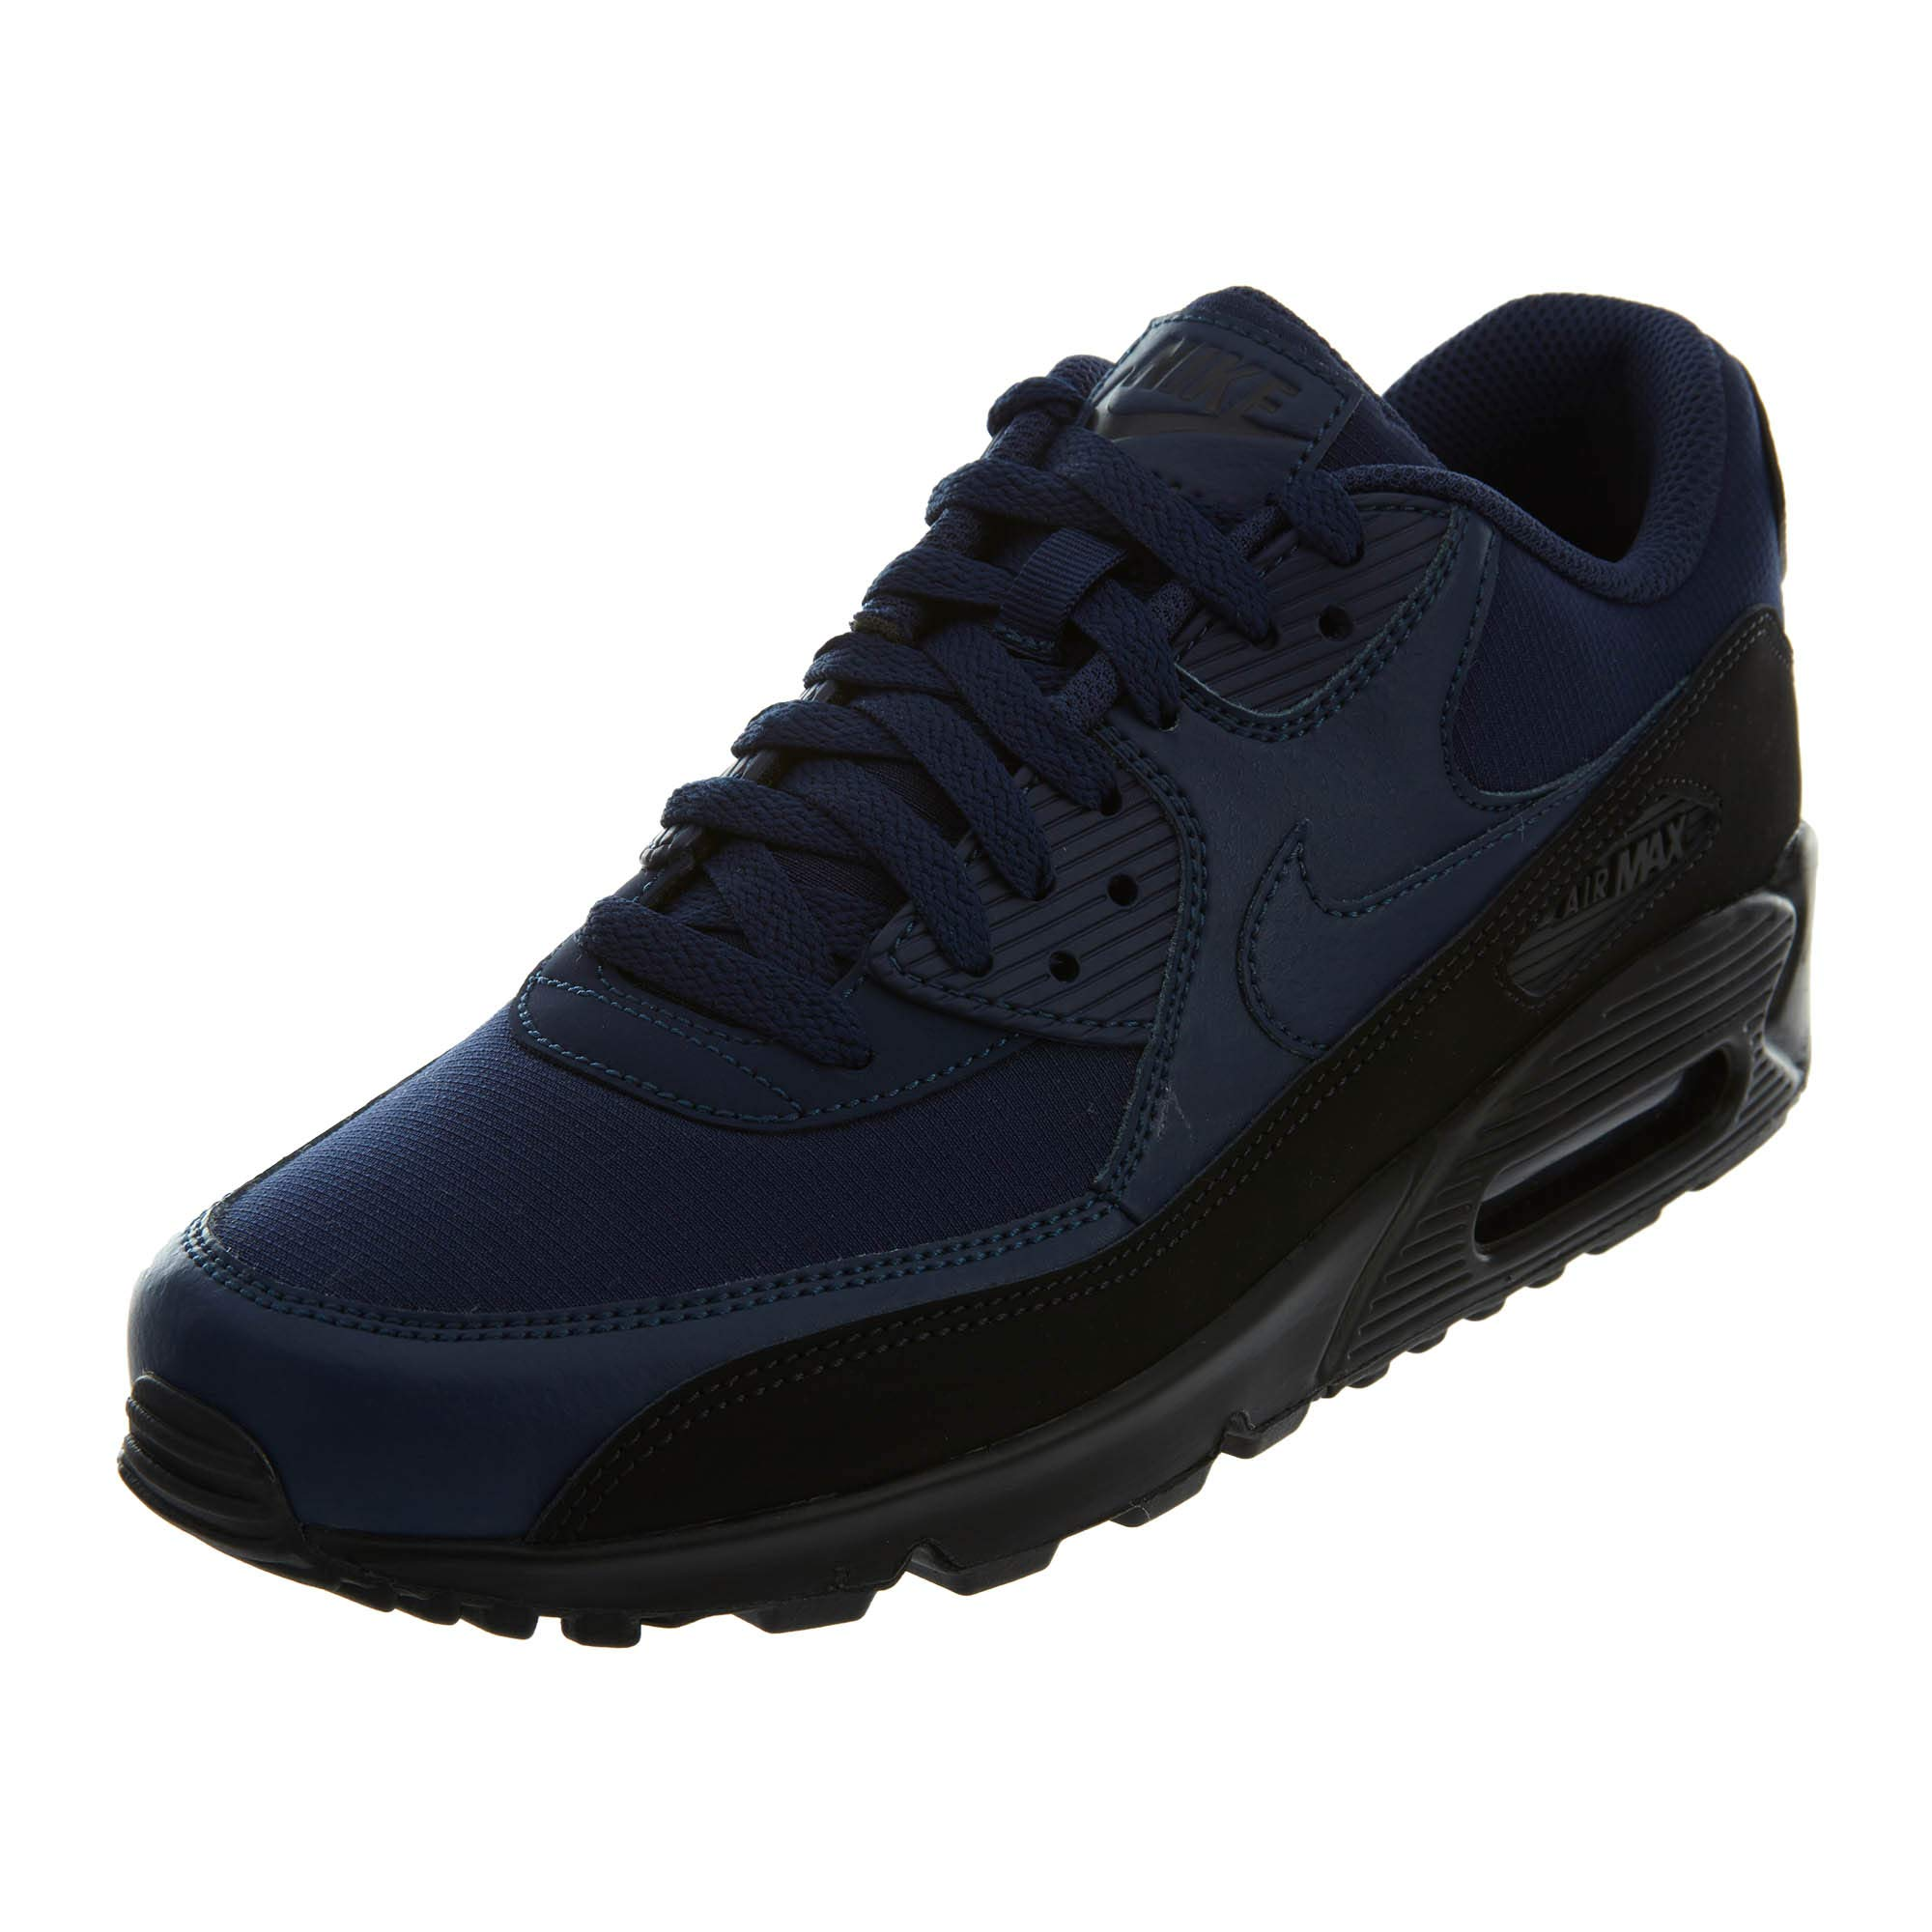 innovative design bd2ac 9f89e Nike Mens Air Max 90 Essential Running Shoes Black/Midnight Navy AJ1285-007  Size 13